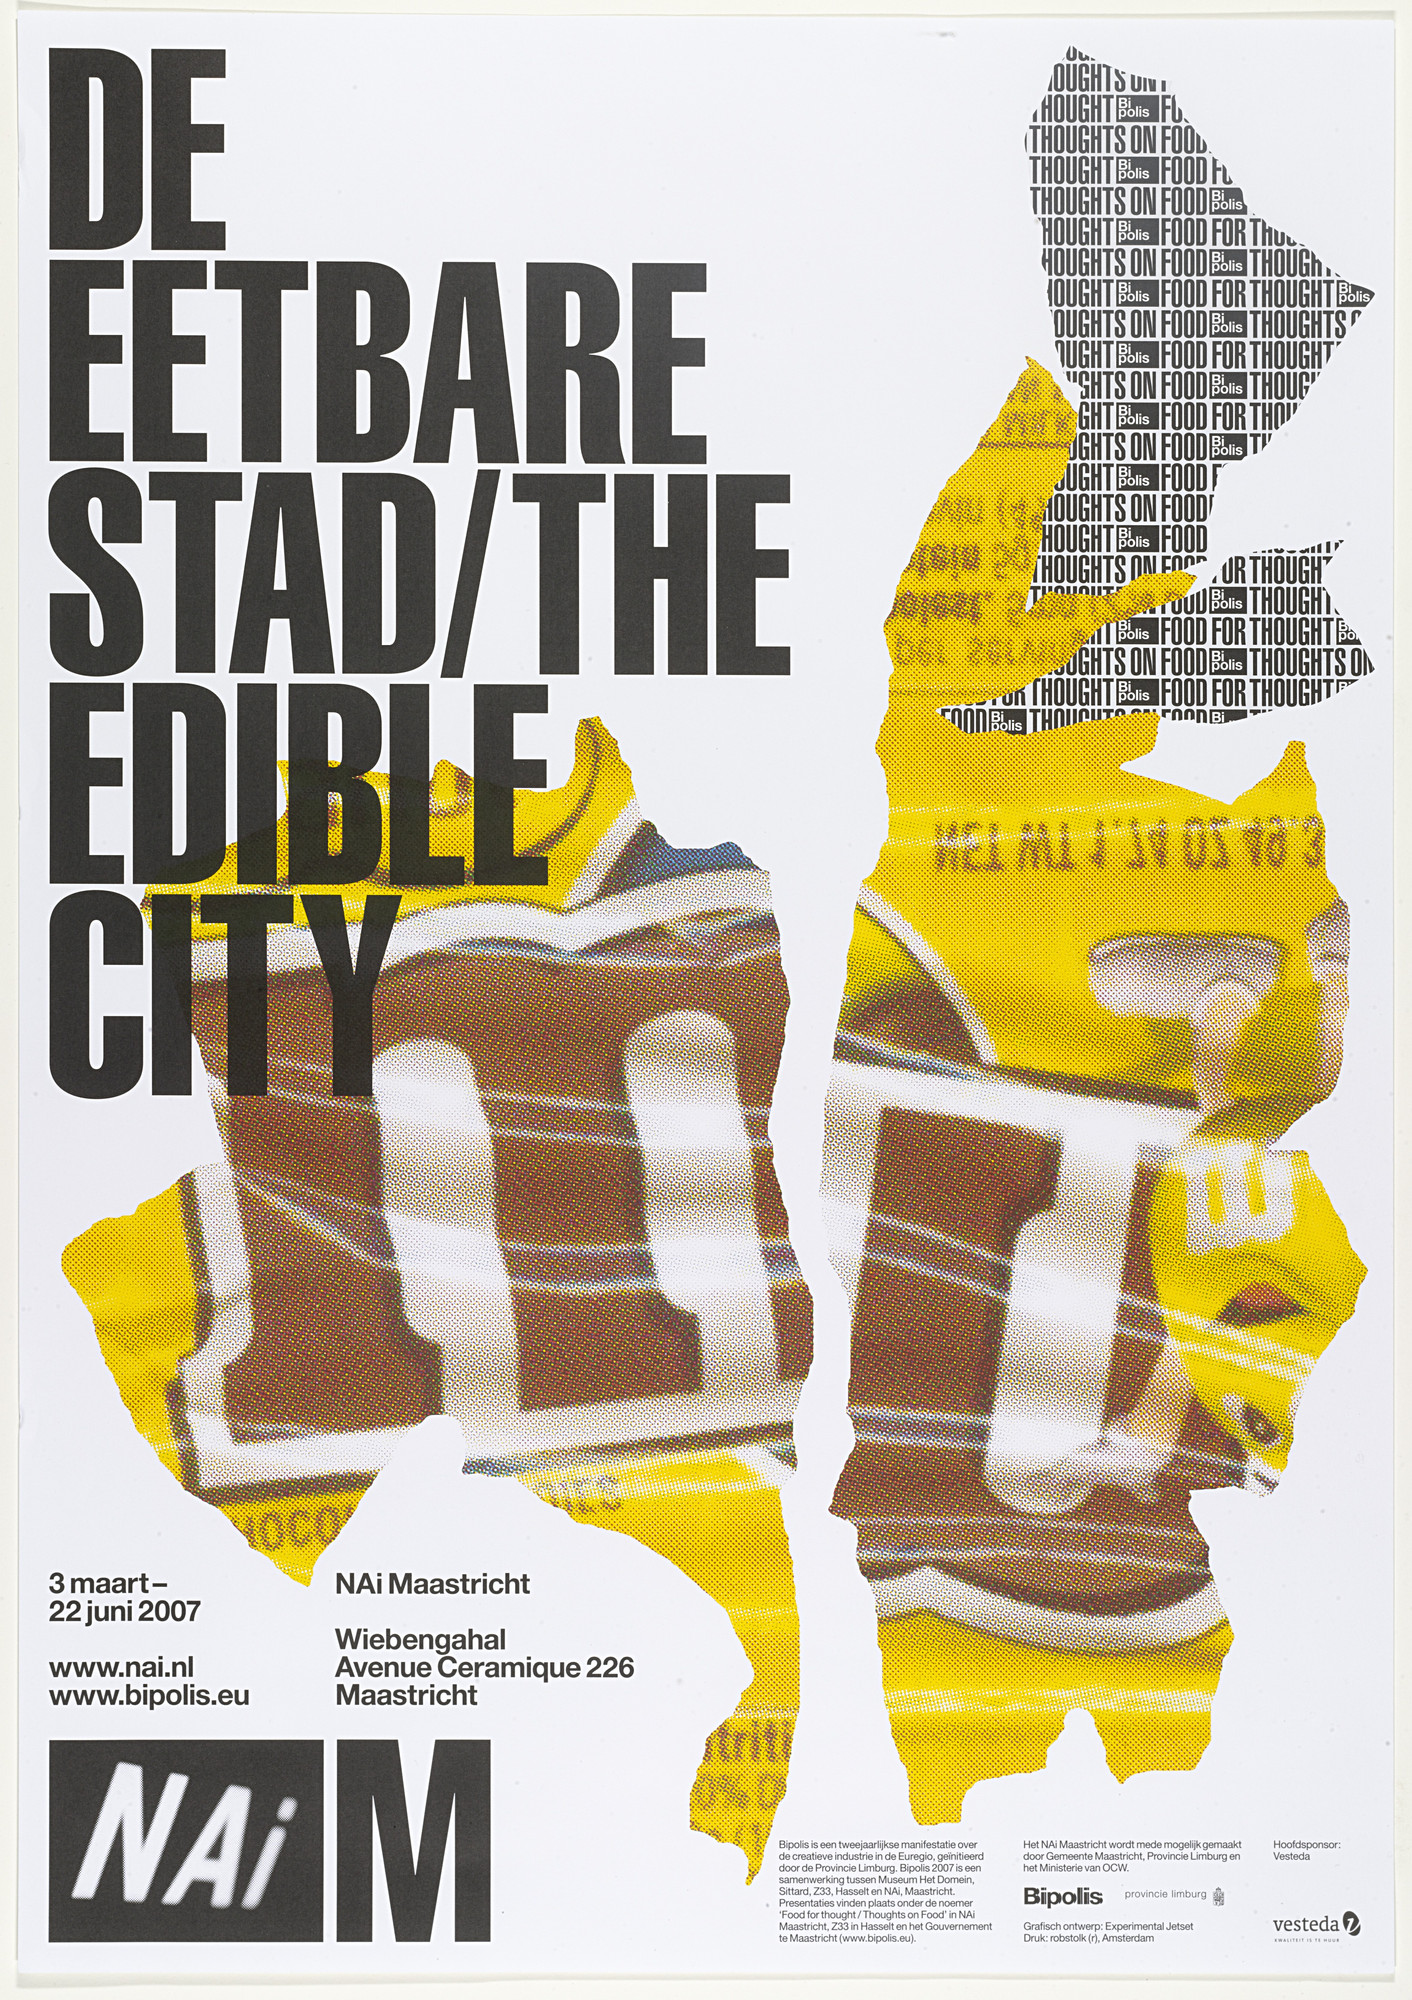 Experimental Jetset. De Eetbare Stad / The Edible City. 2007